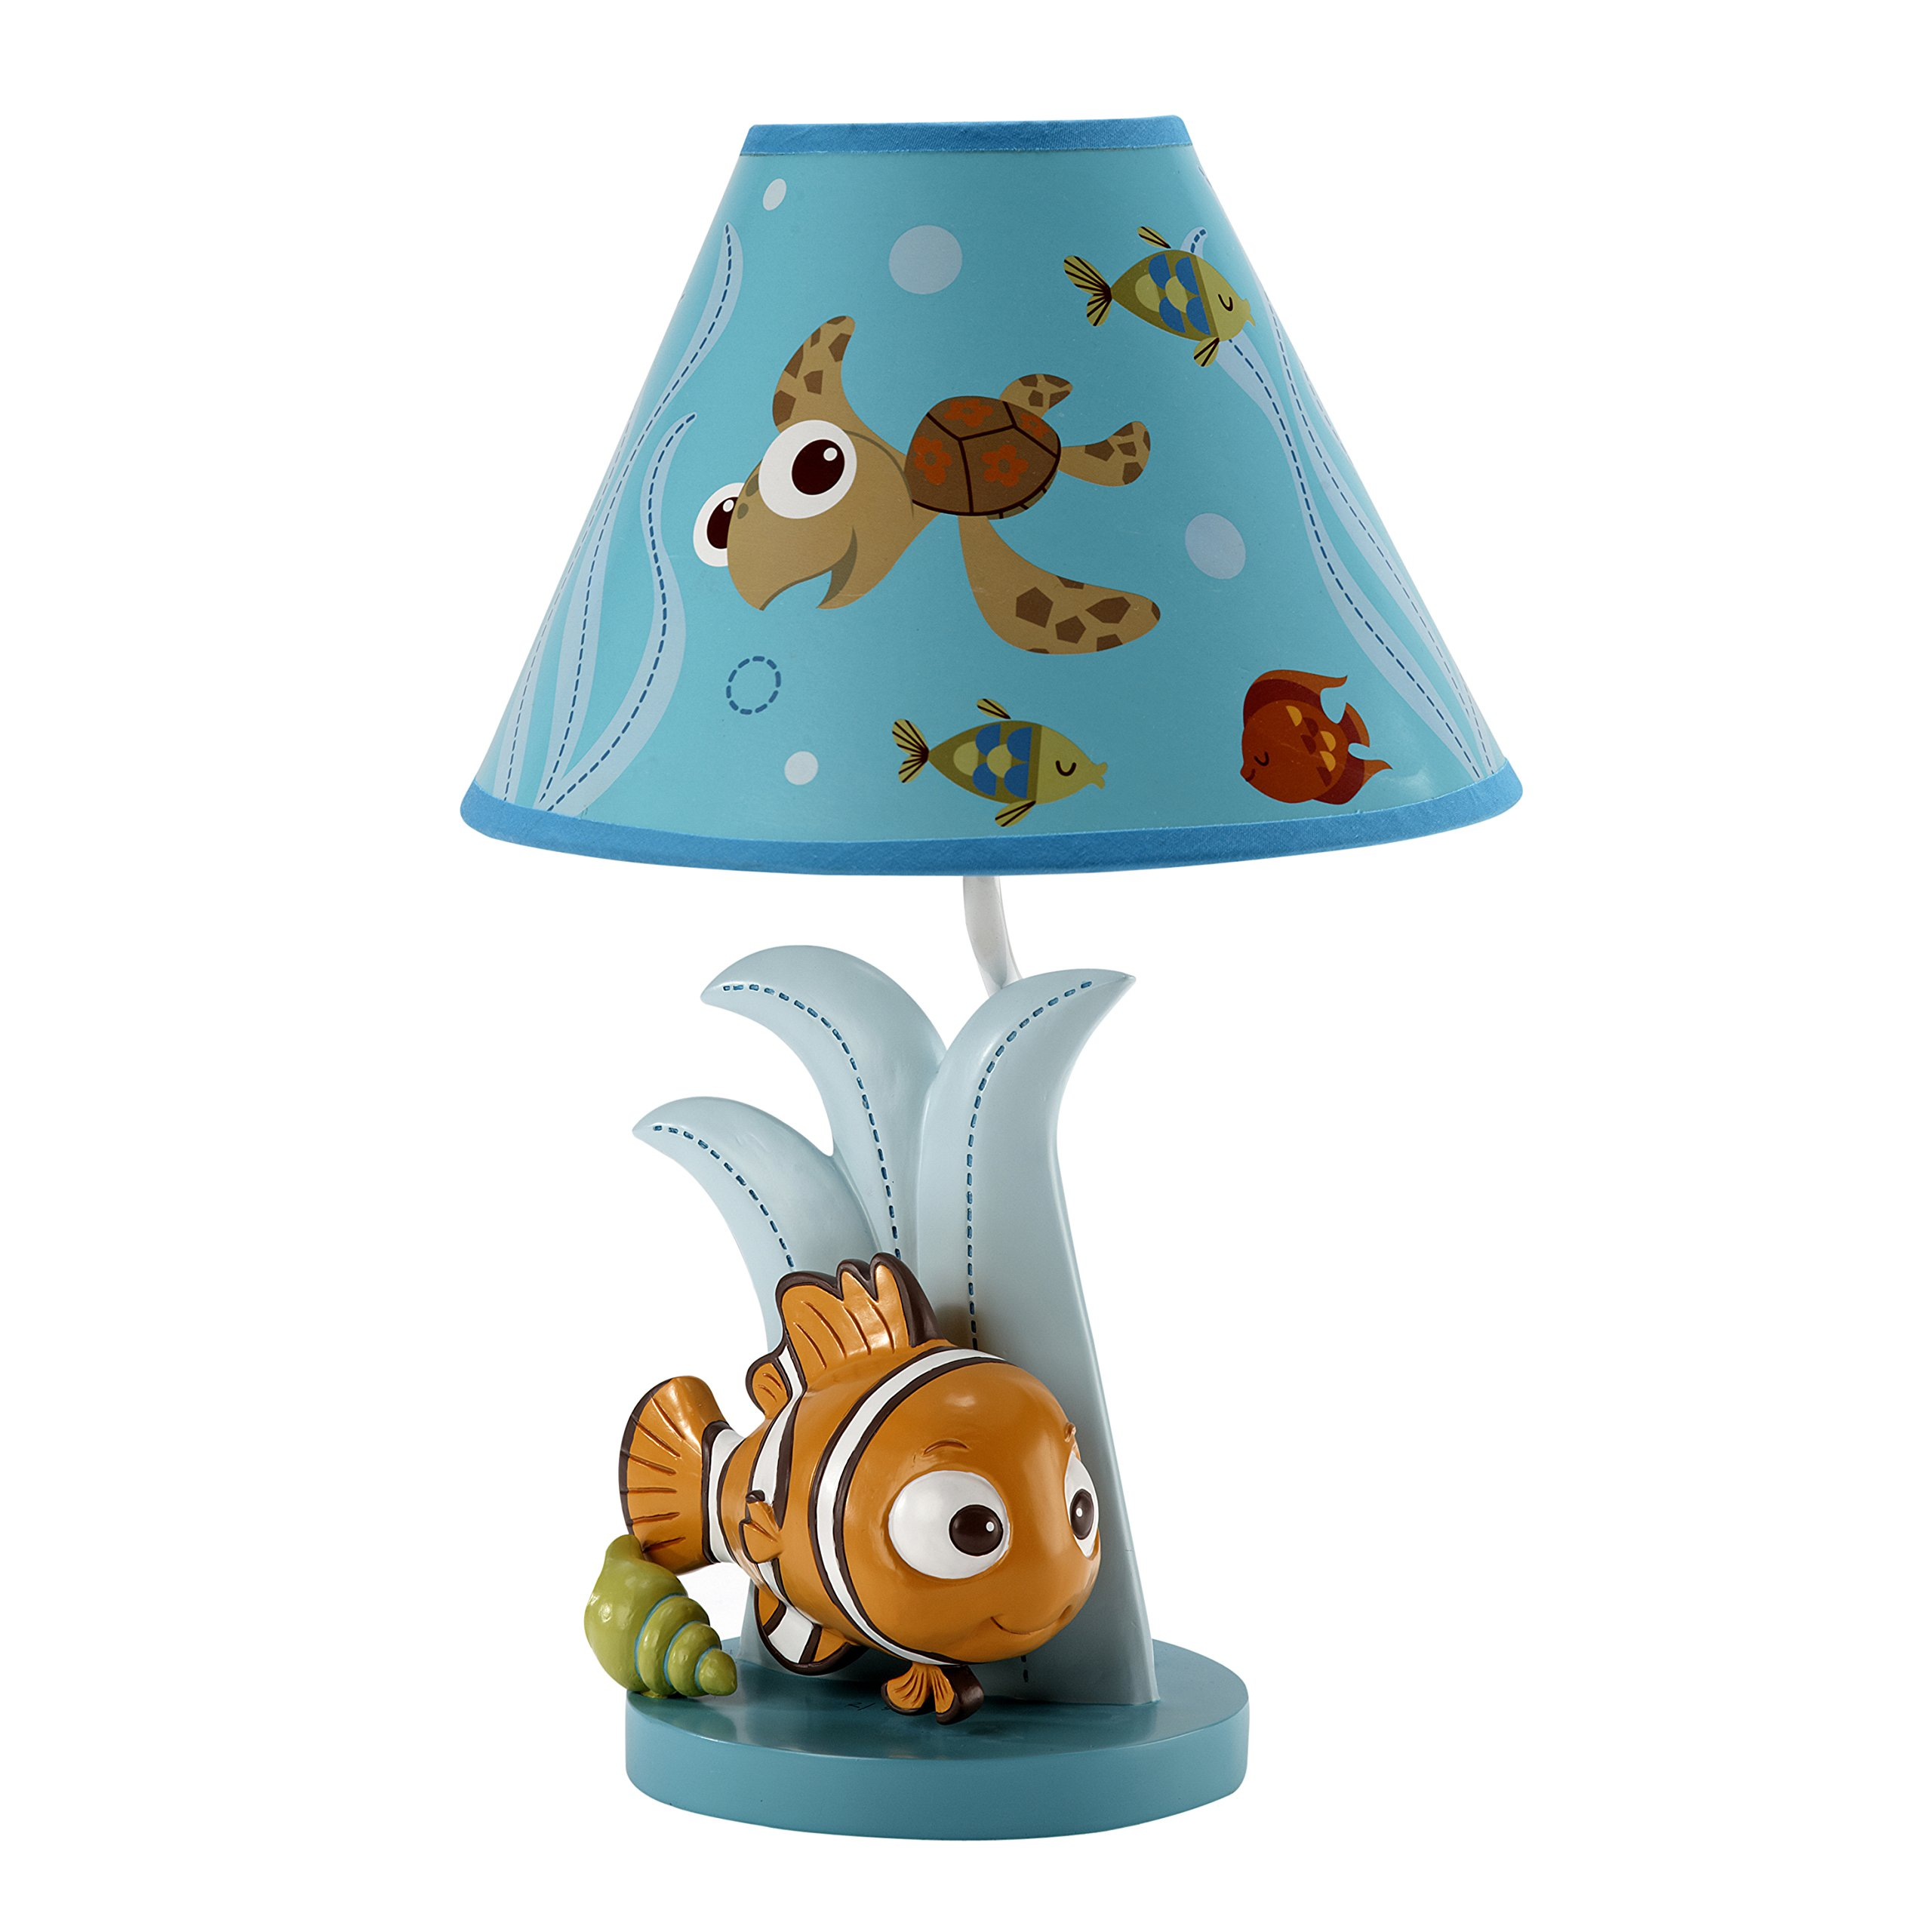 Disney Finding Nemo Lamp Base and Shade, Blue